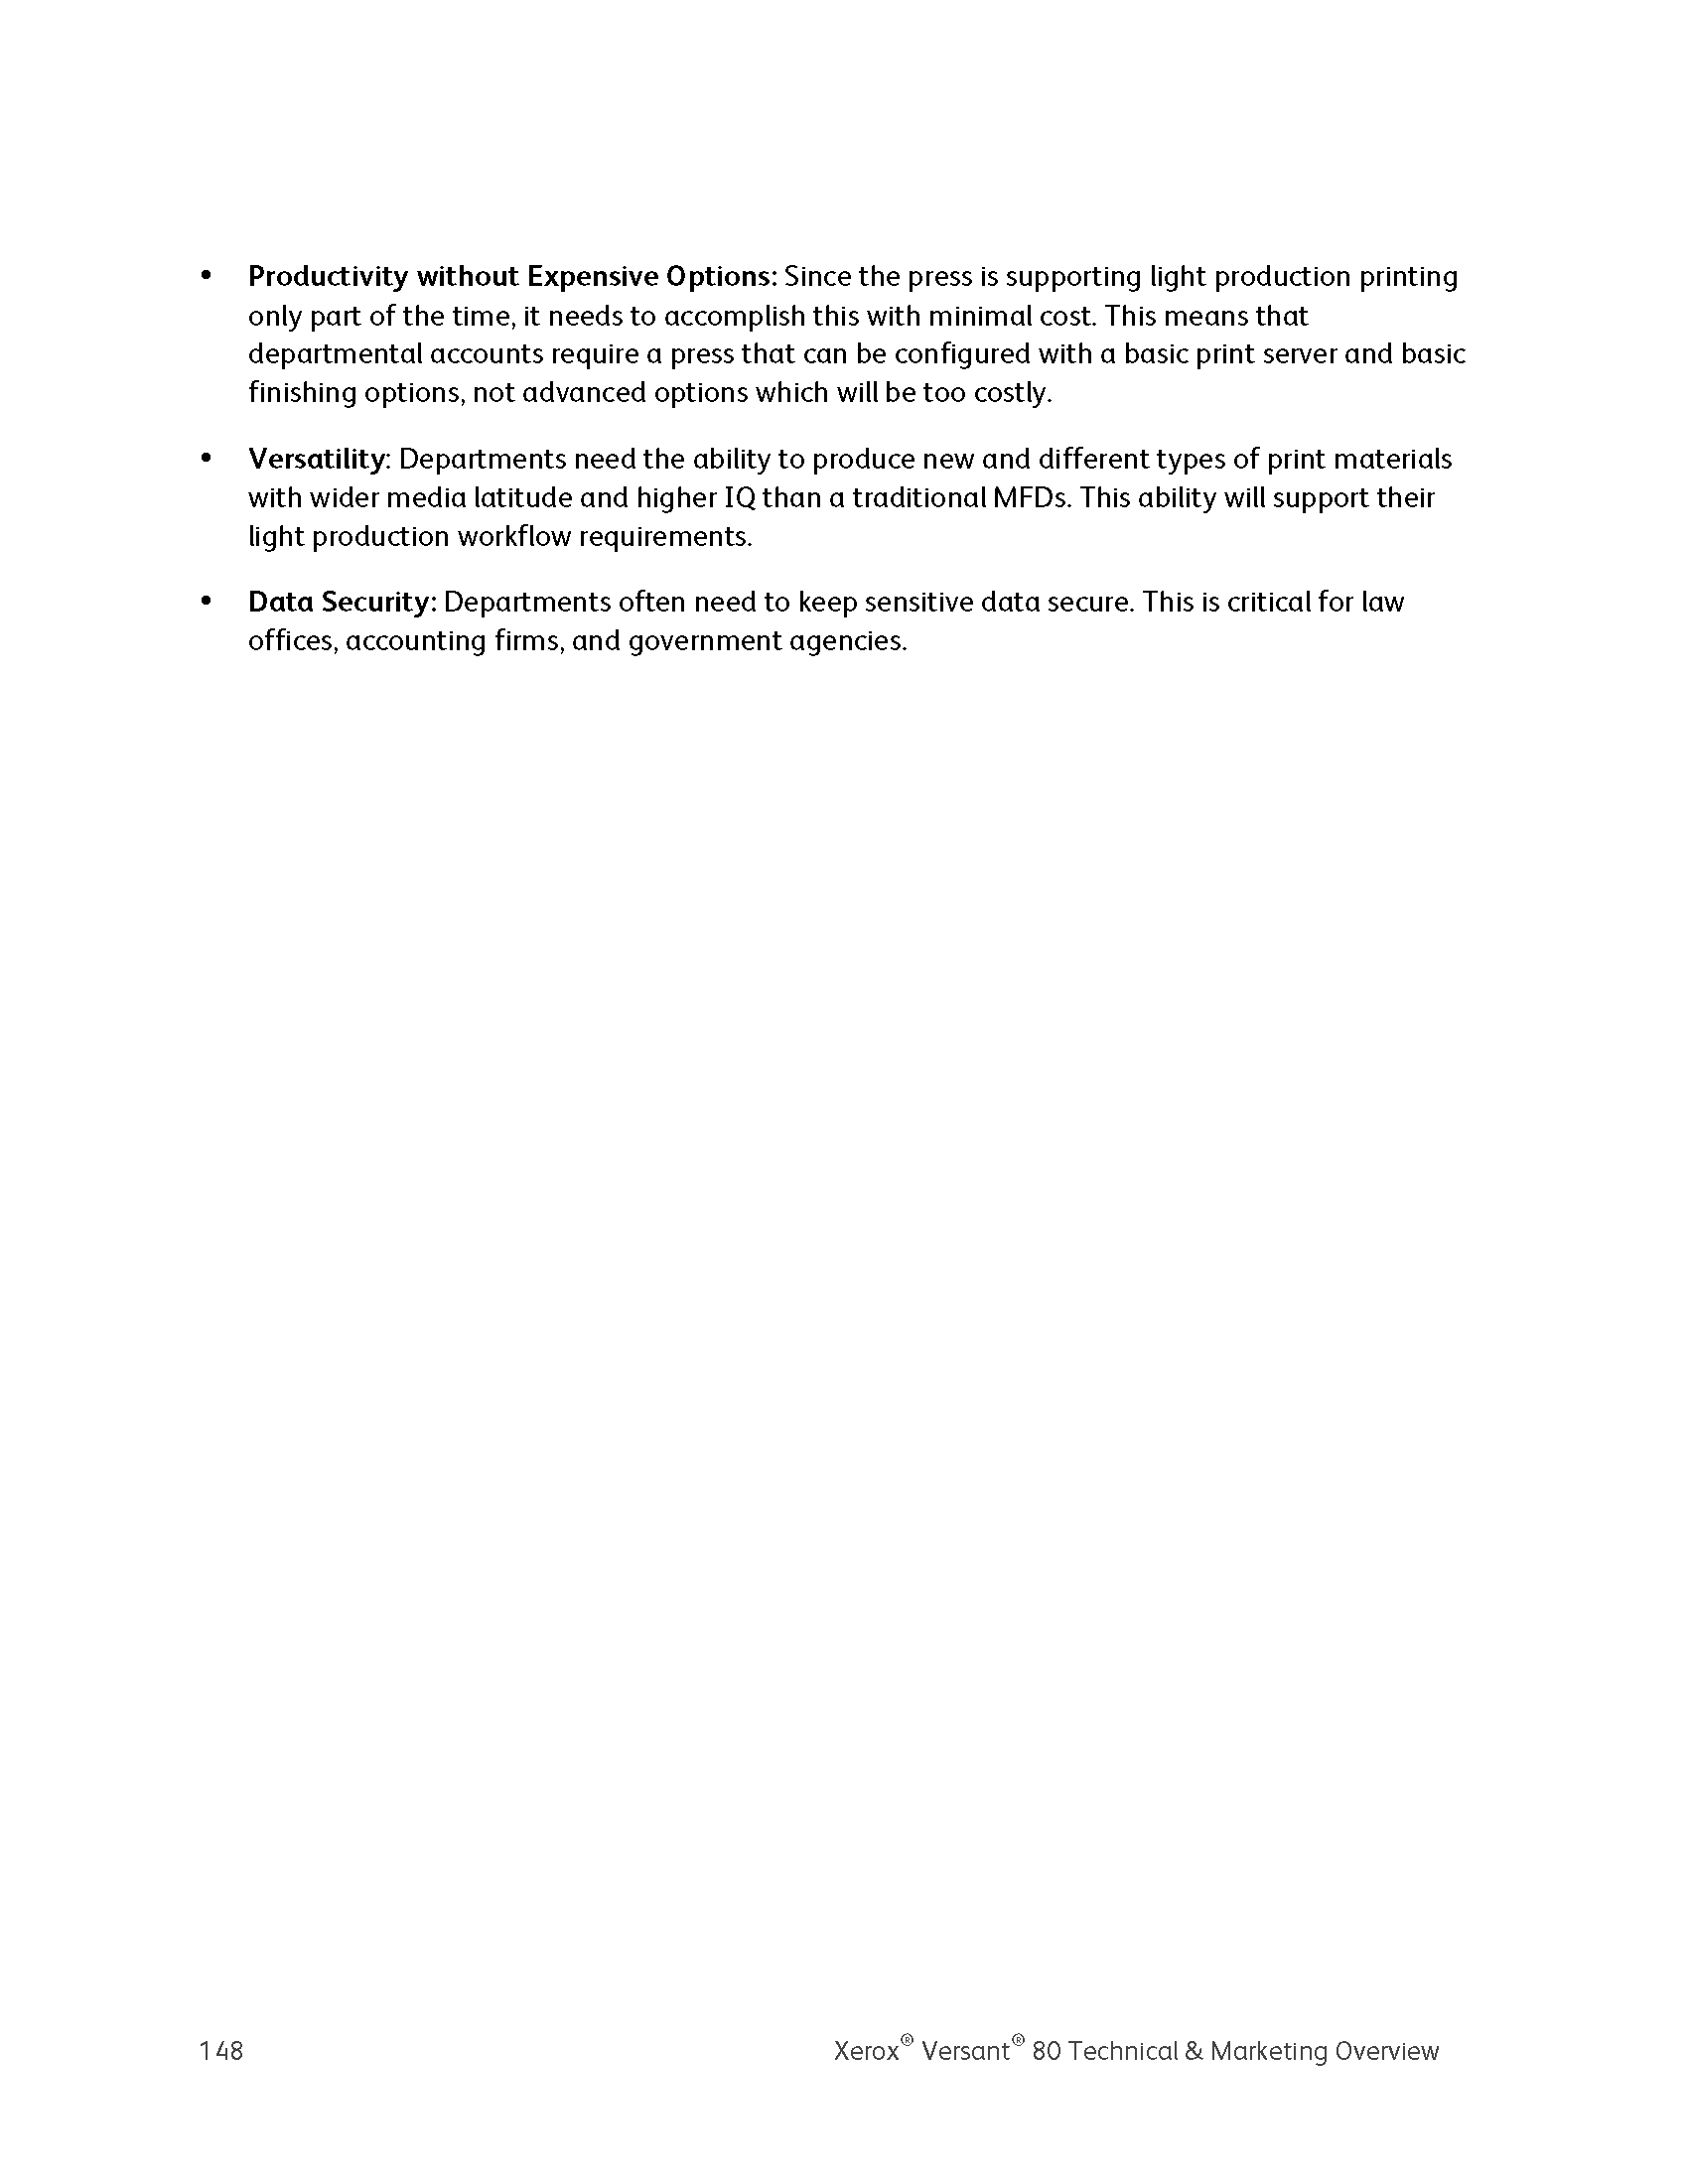 Versant 80 TMO Final_12.18.14.Optimized_Page_156.png